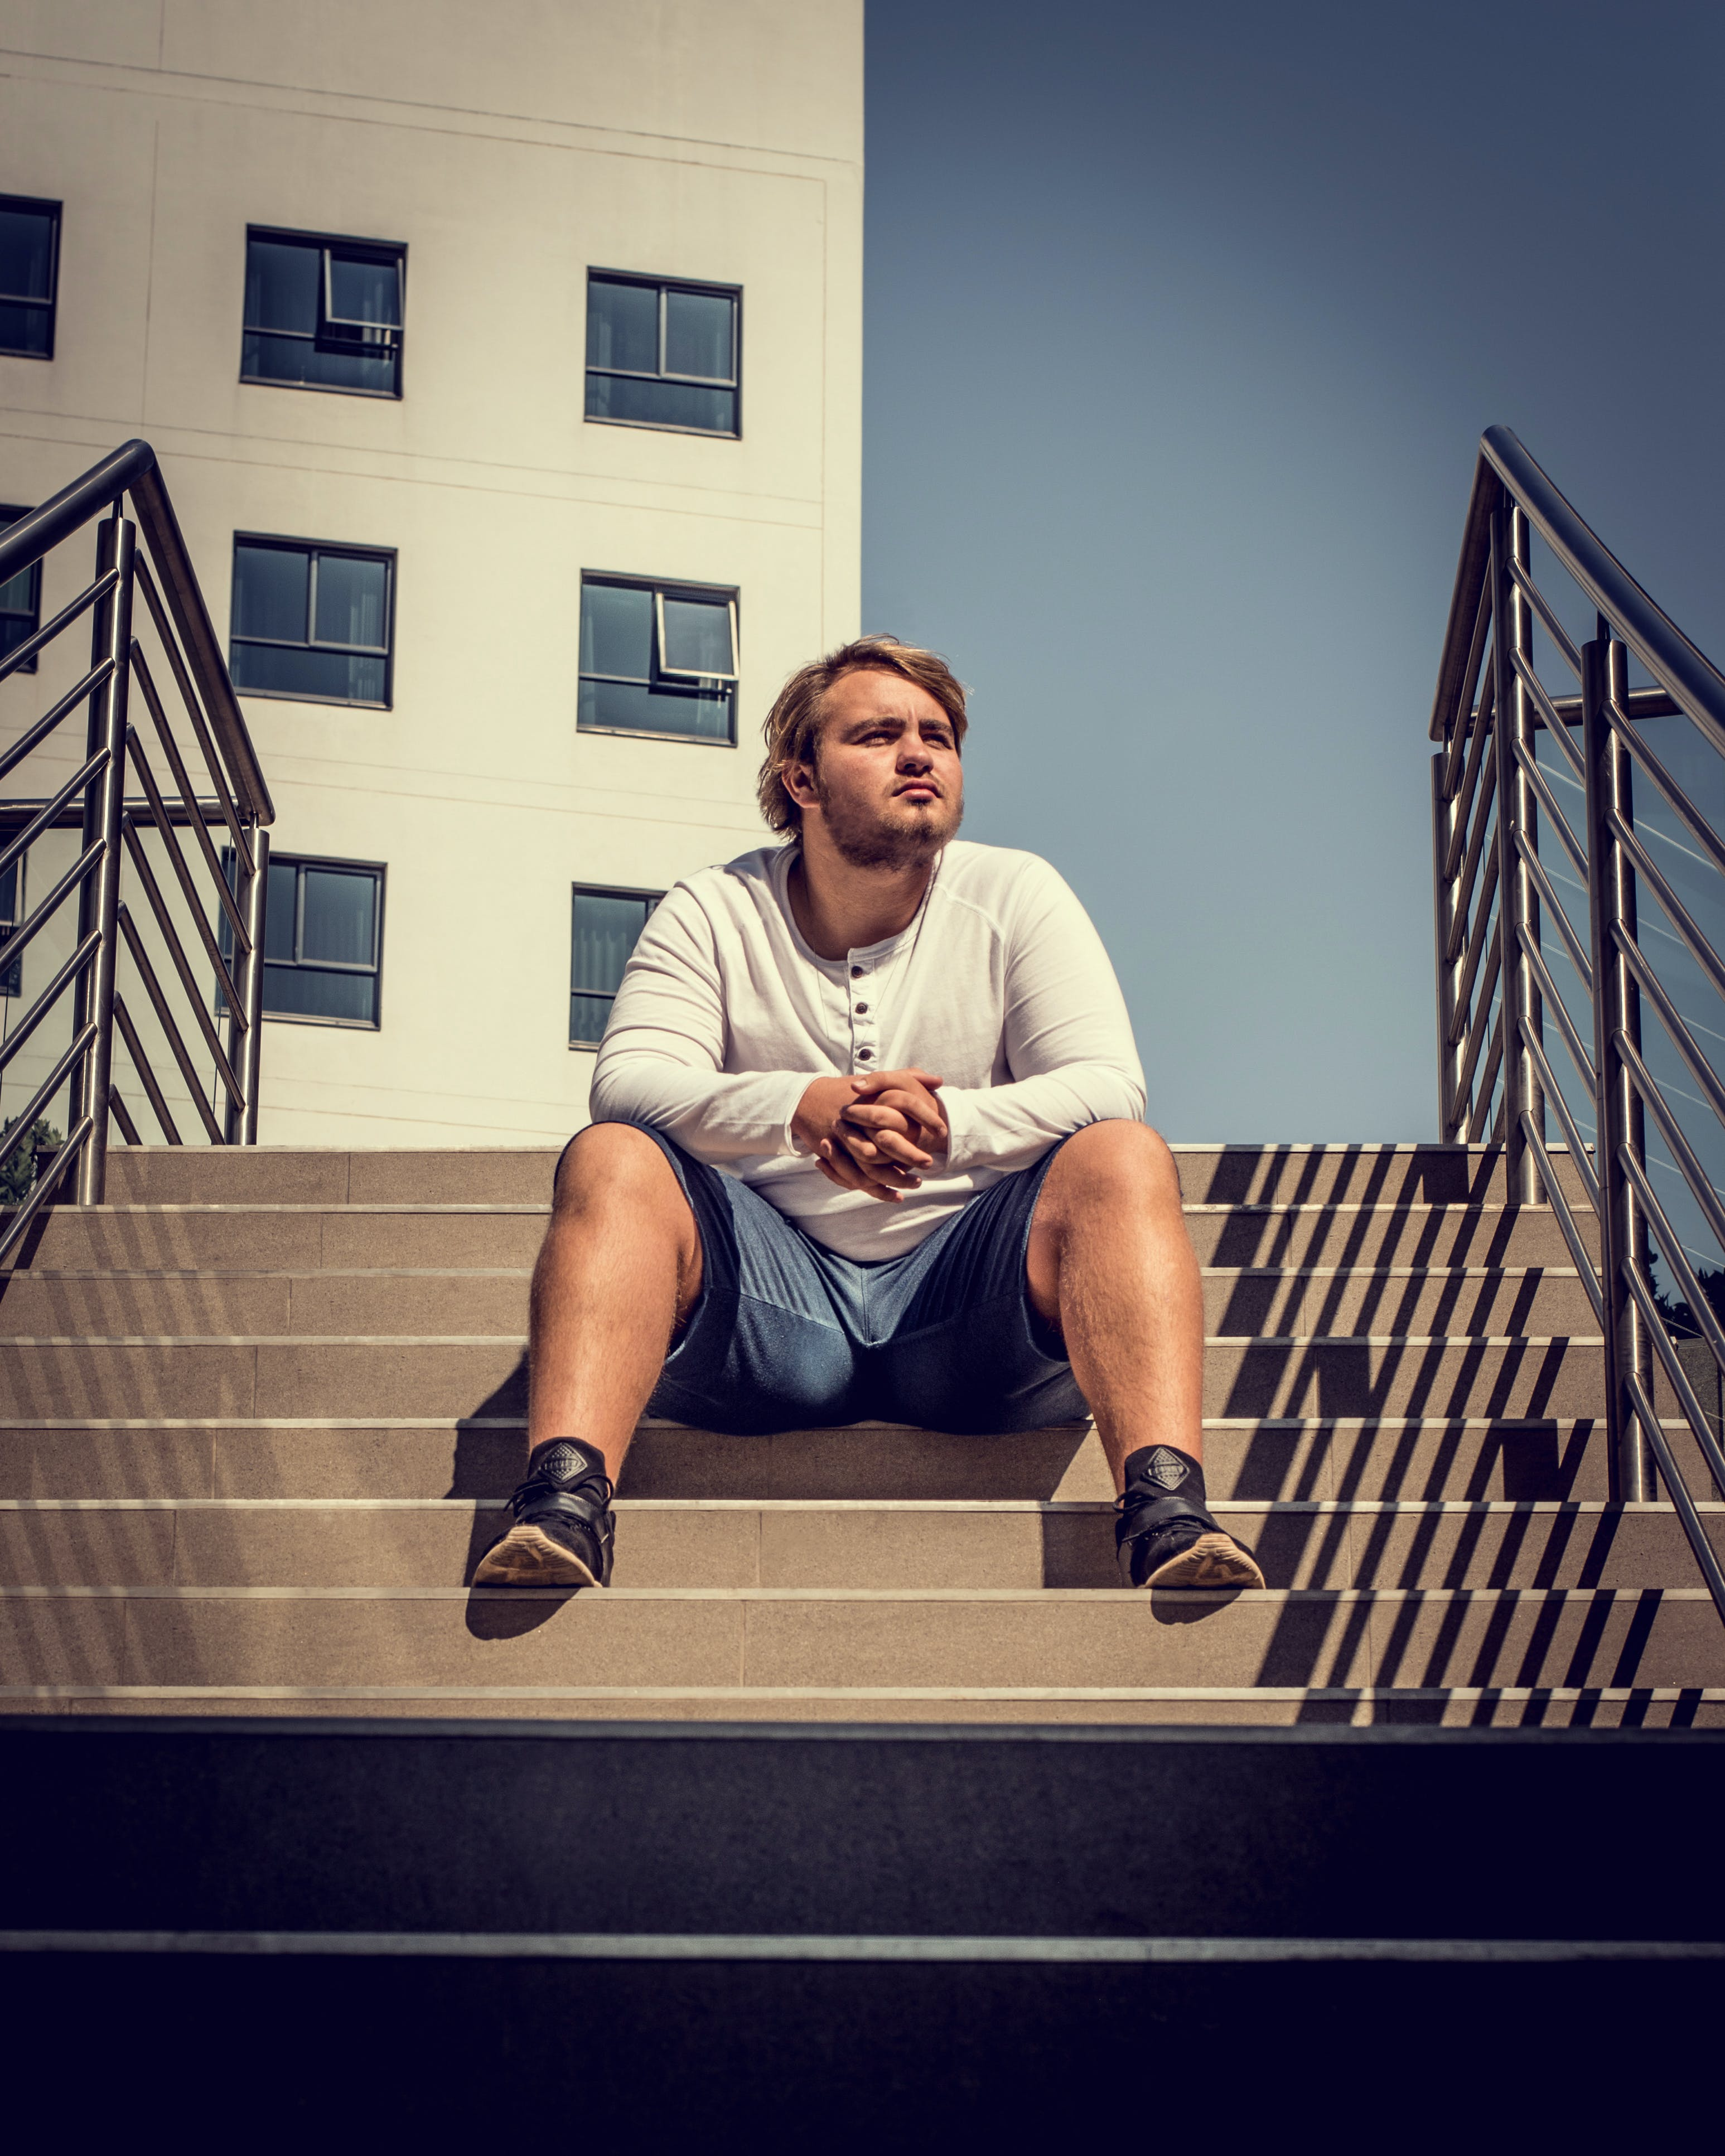 Man Sitting On Stairs